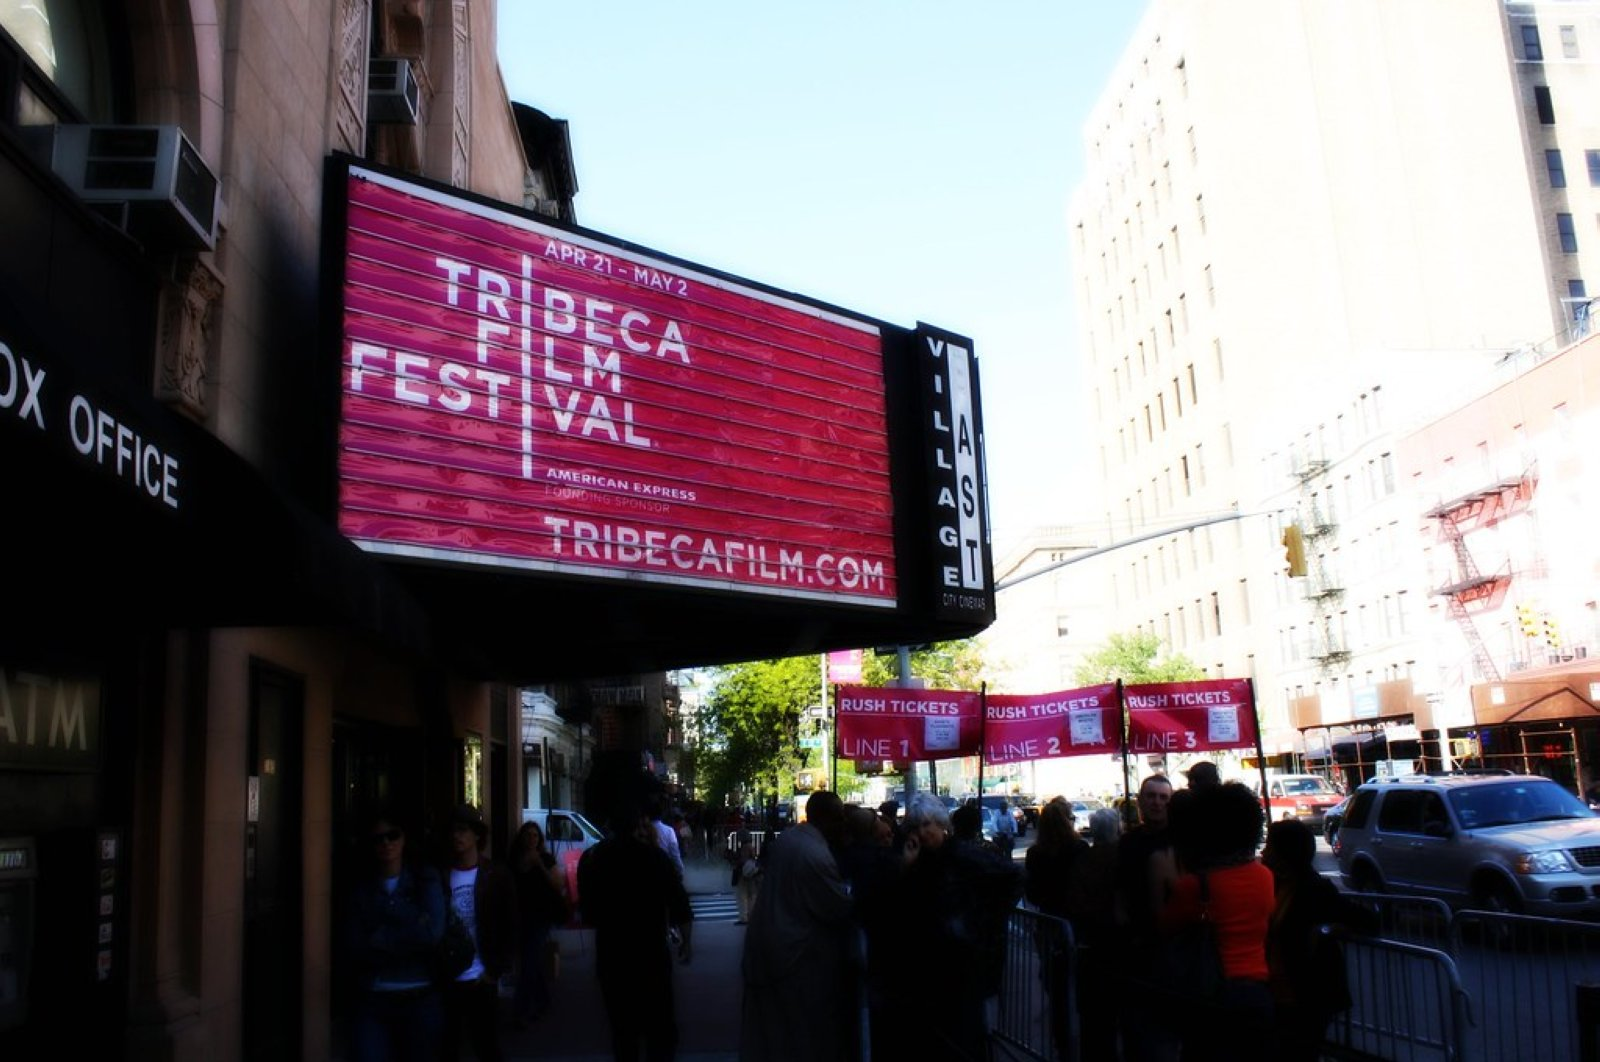 Tribeca Film Festival was planned to be organized between Apr. 15 and 26 this year.